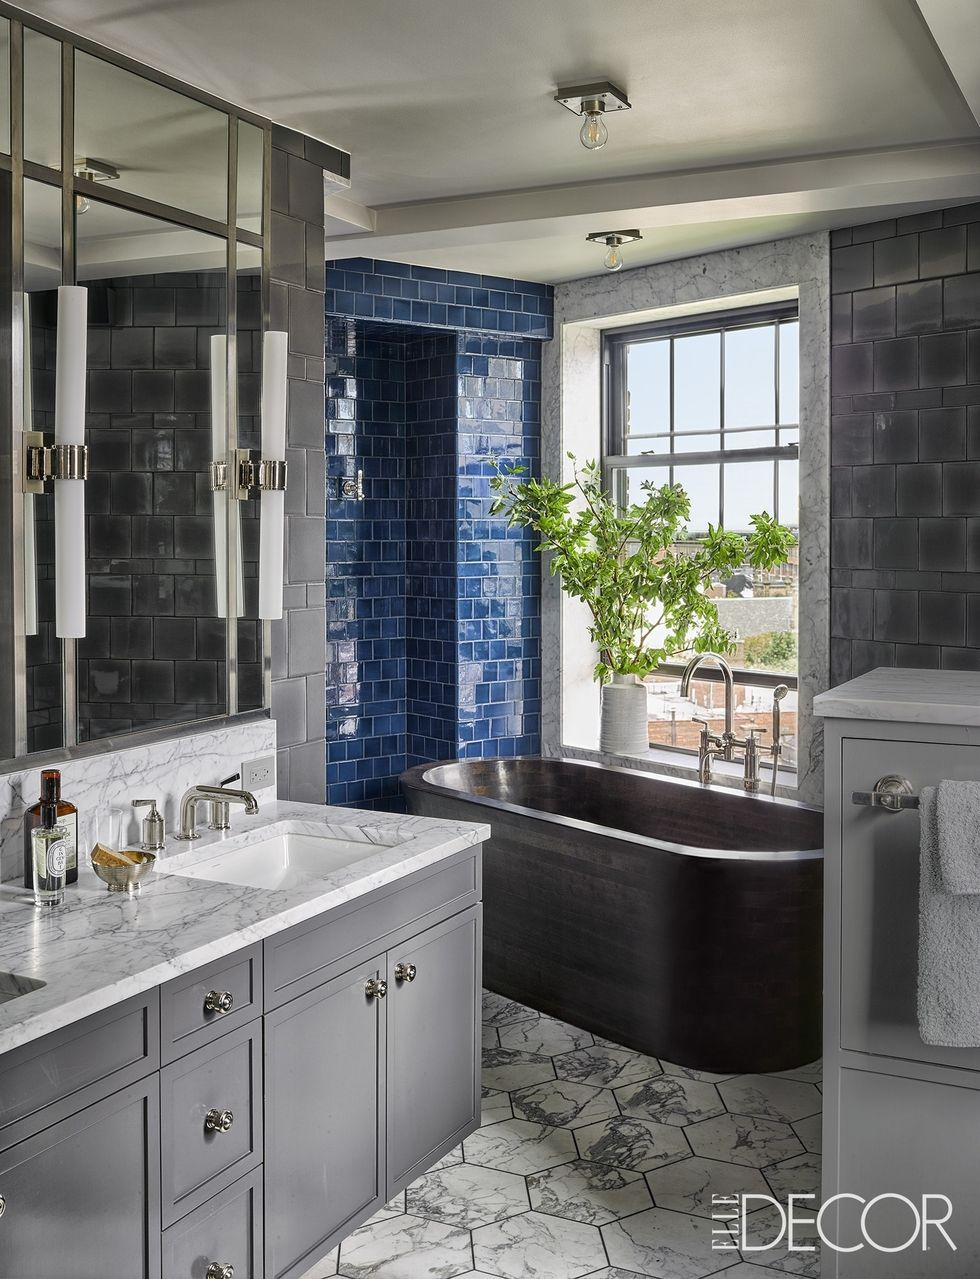 80 Best Bathroom Design Ideas Gallery Of Stylish Small Large - Small-bathroom-remodels